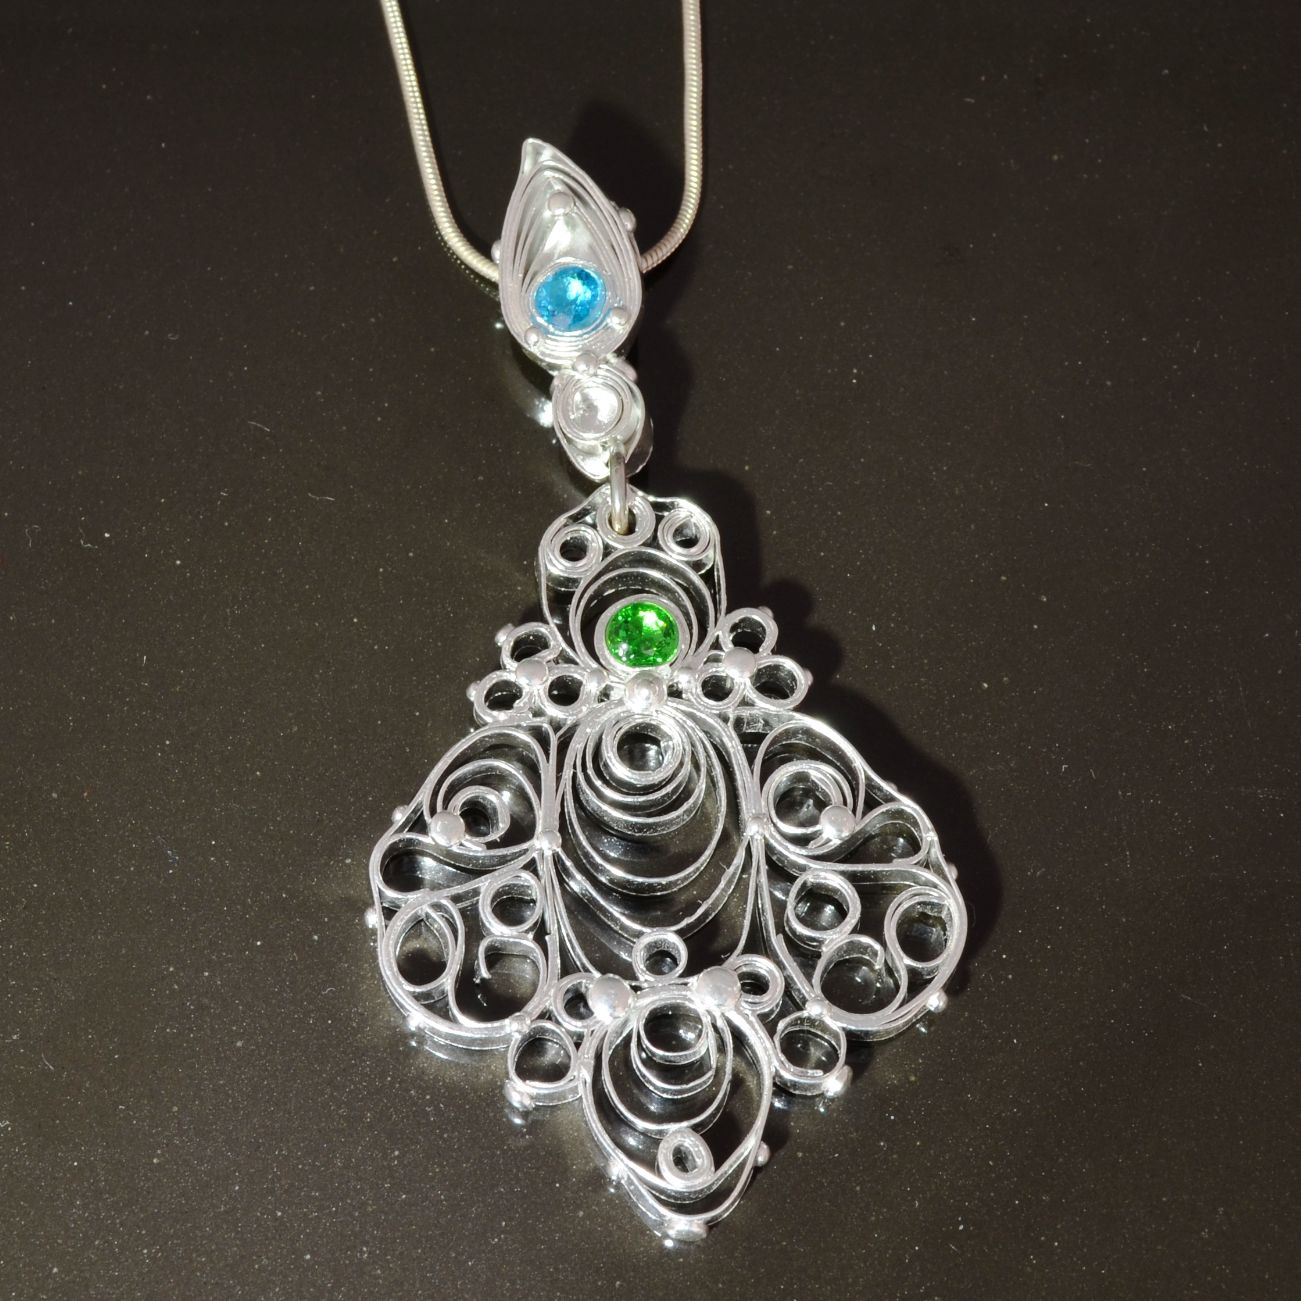 Quilligree Silver Clay Pendant by Tracey Spurgin of Craftworx Jewellery Workshops